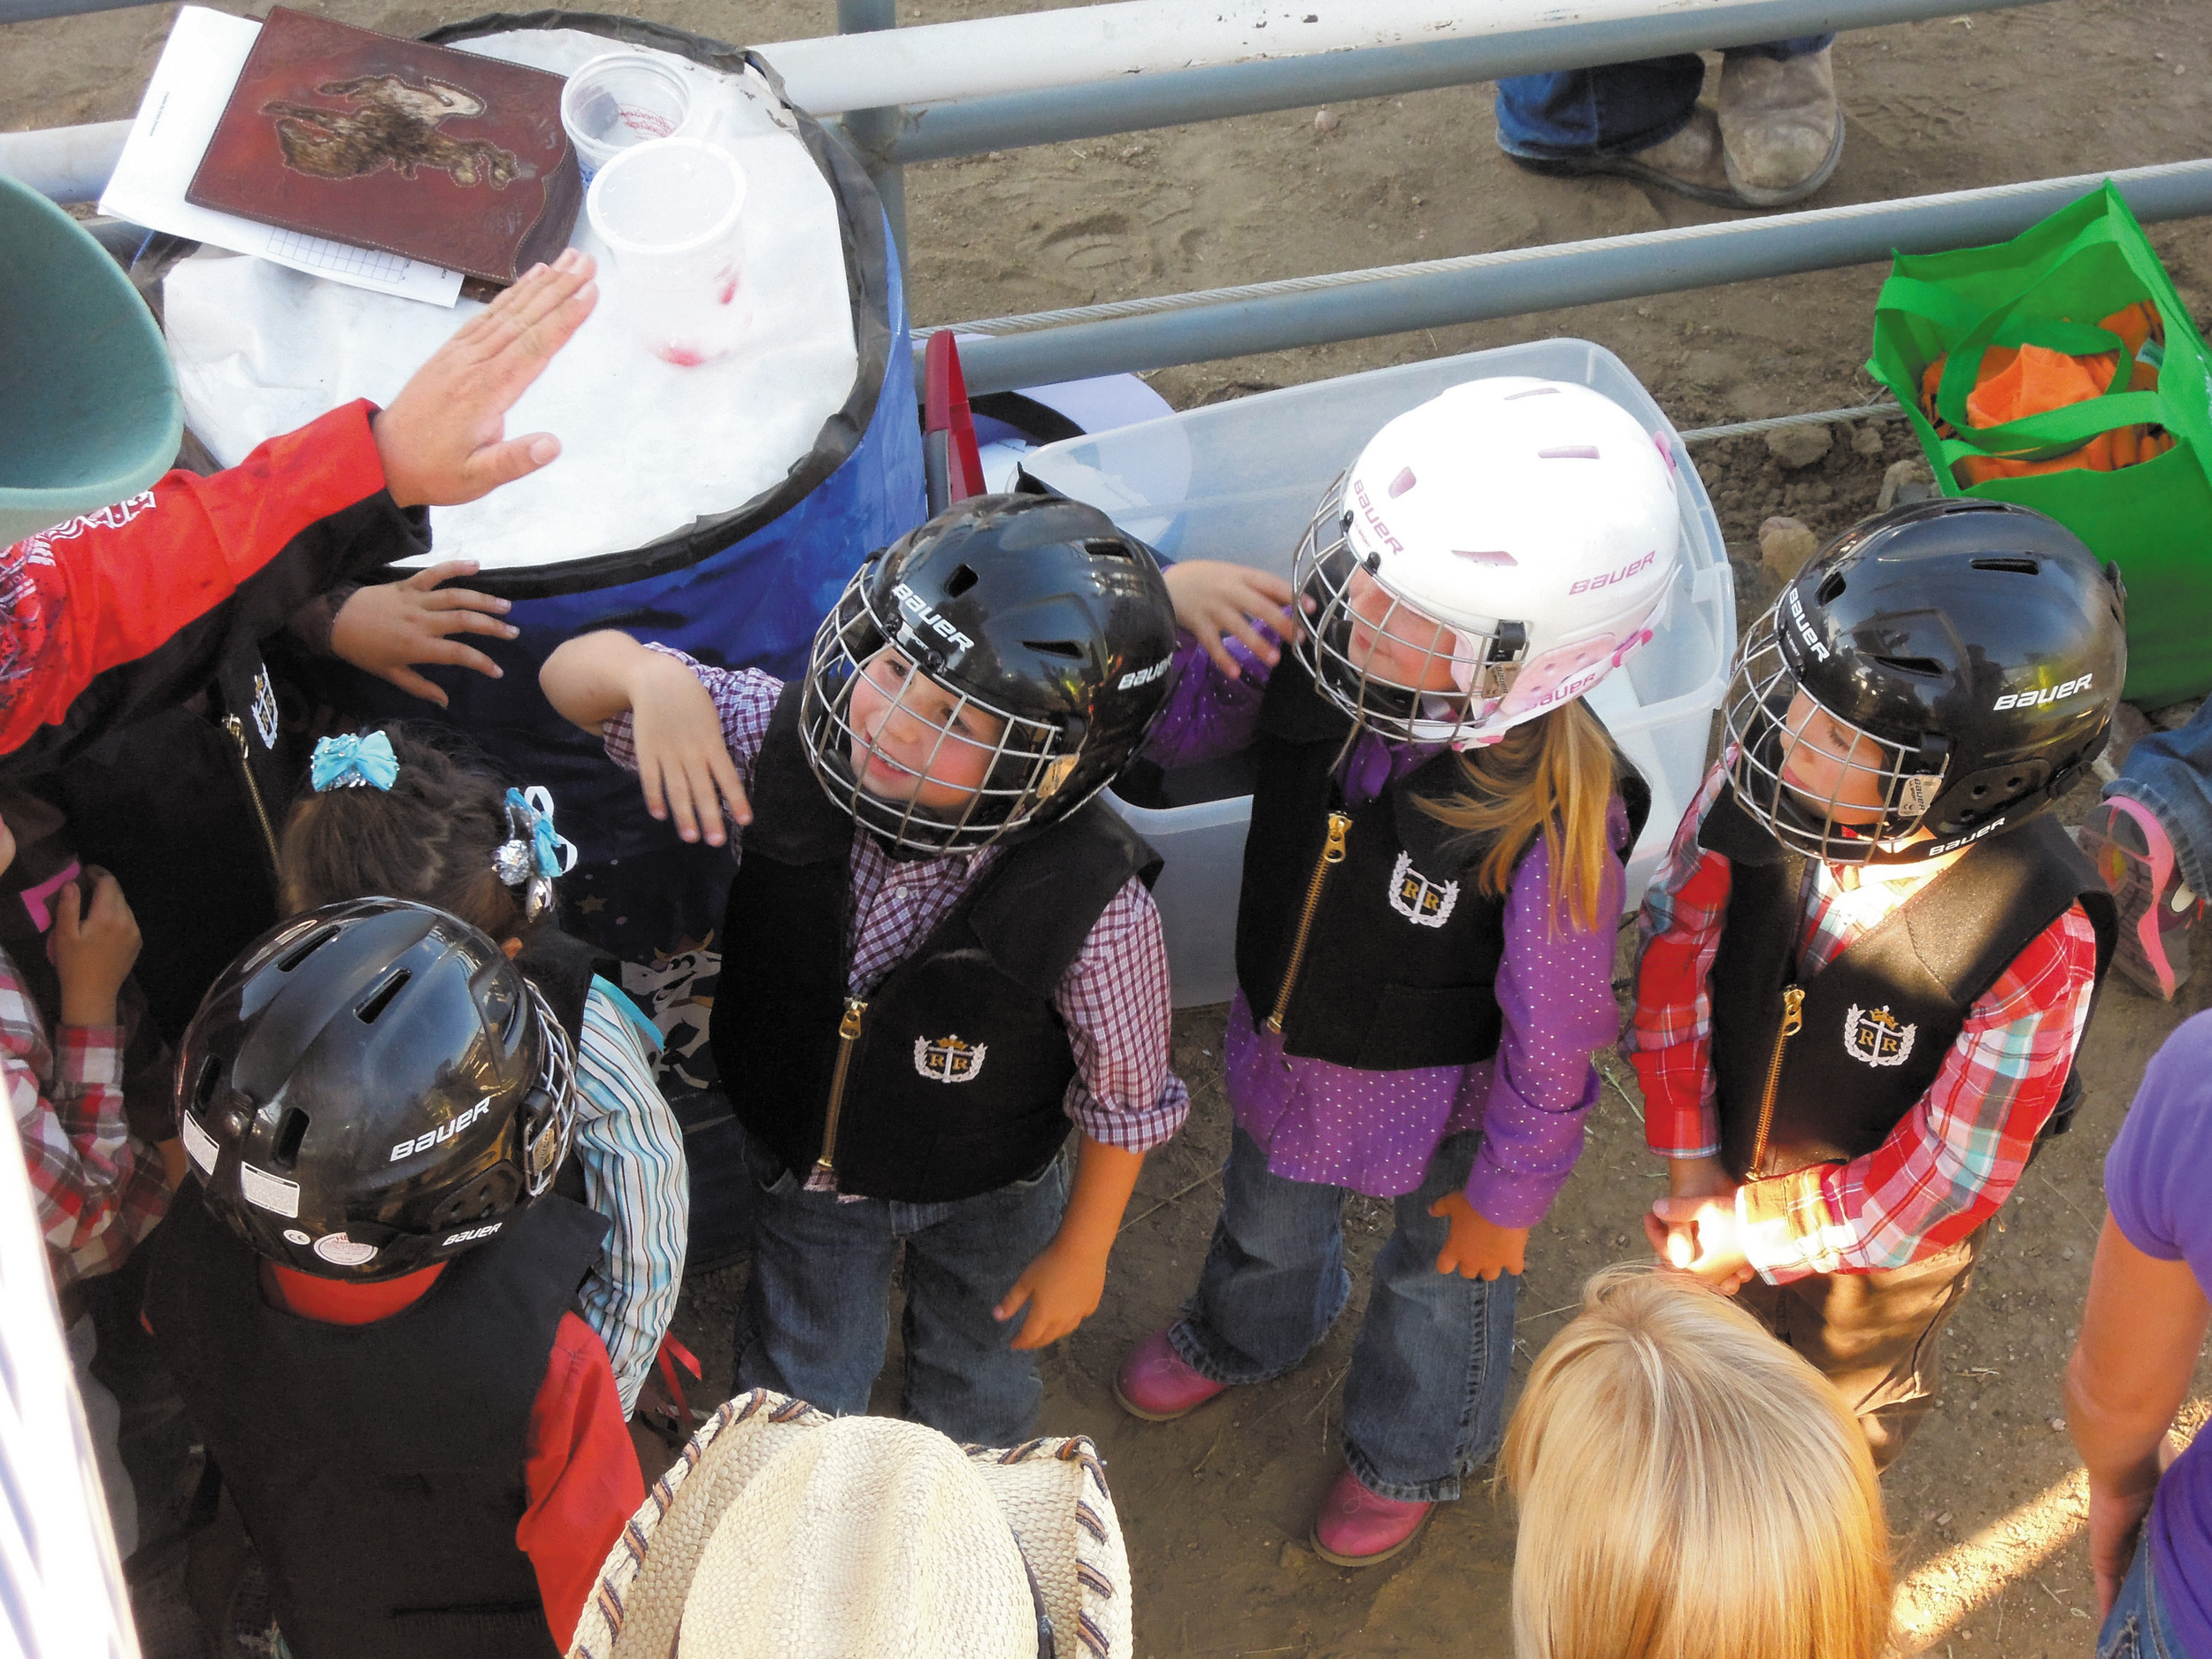 Children get ready for the annual United Power Mutton Bustin event at the Budweiser CPRA Rodeo during the 2013 Adams County Fair. This year, fair representatives will hold the official 110th Anniversary celebration during the rodeo at 7 p.m. Thursday, July 31. Photo by Ashley Reimers